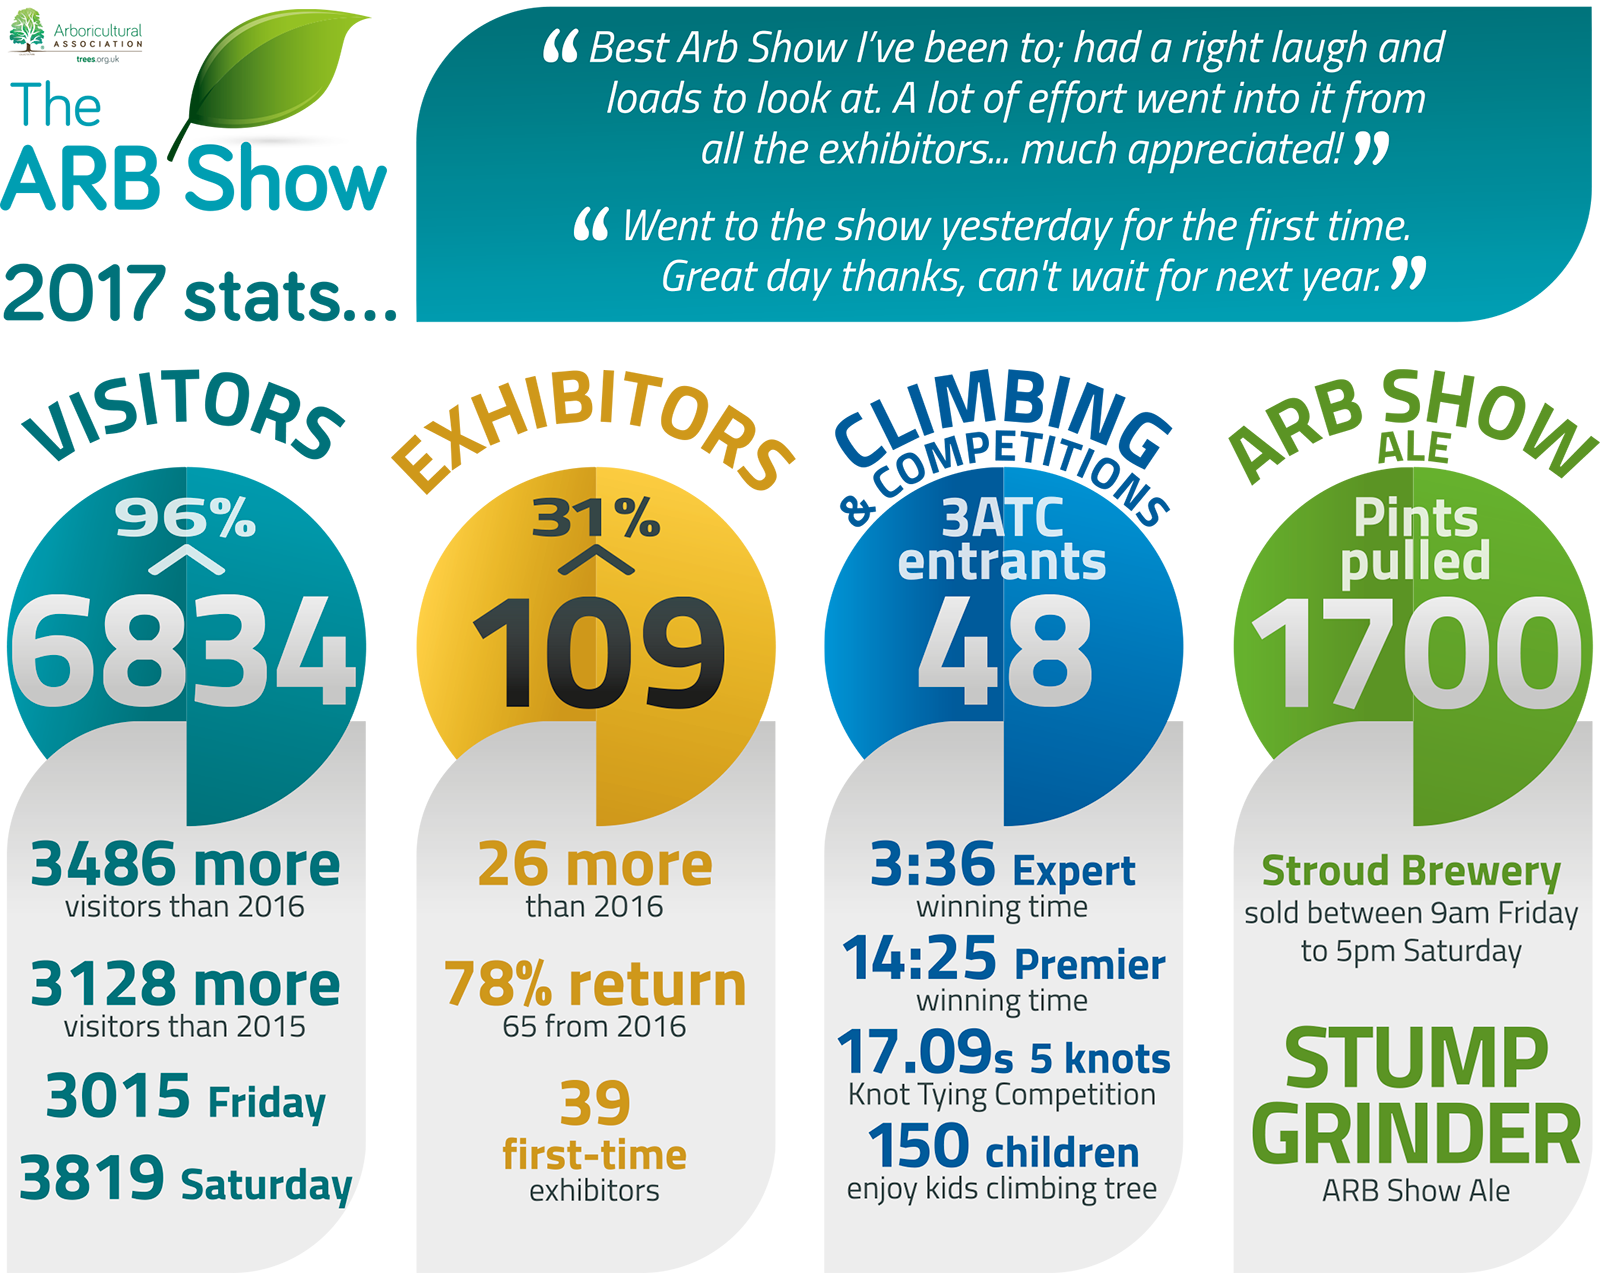 ARB Show 2017 Stats Infographic